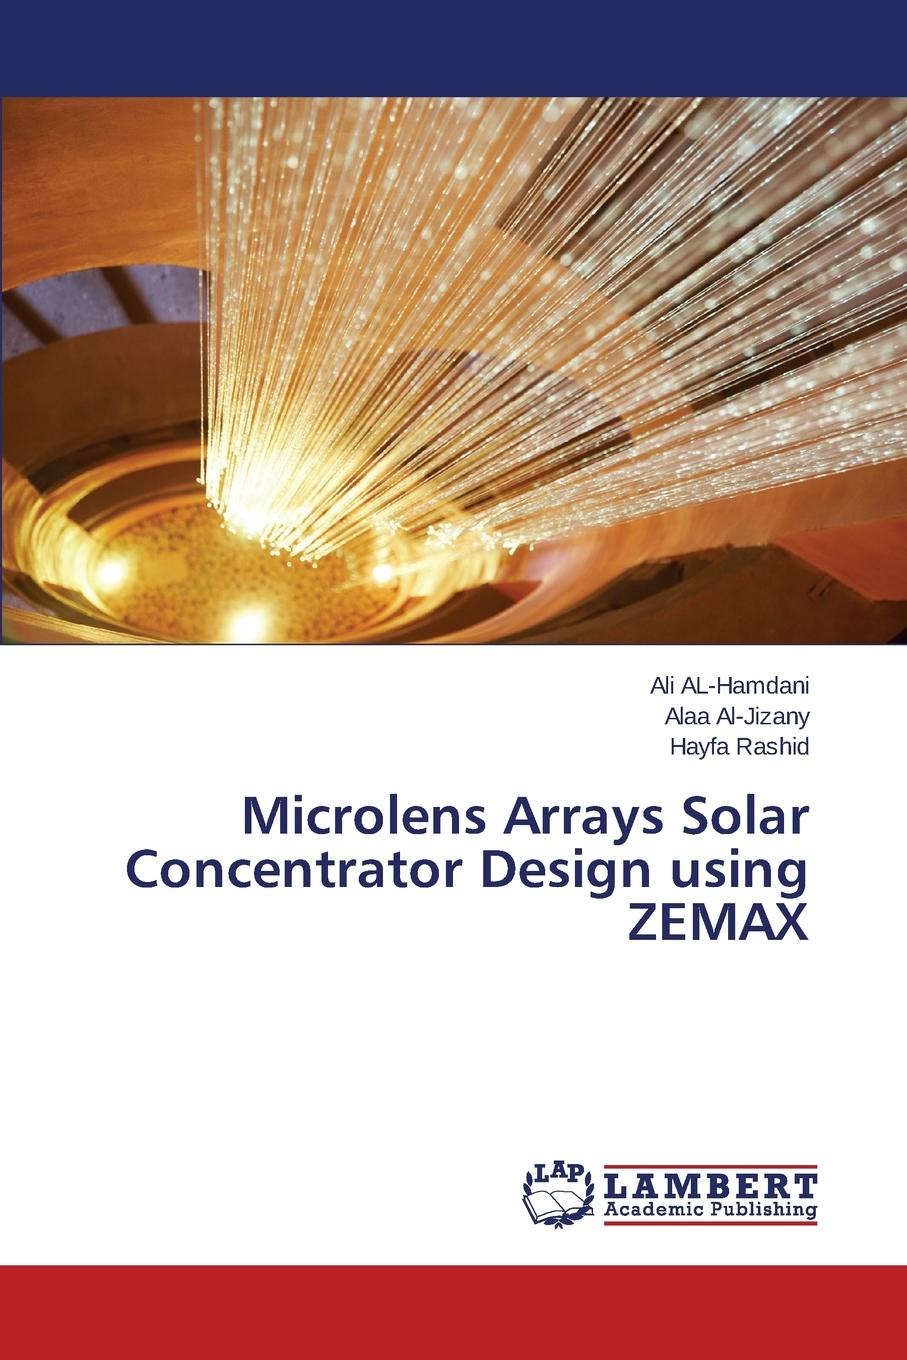 AL-Hamdani Ali, Al-Jizany Alaa, Rashid Hayfa Microlens Arrays Solar Concentrator Design using ZEMAX nulls improvement by rf switch in time modulated linear antenna arrays